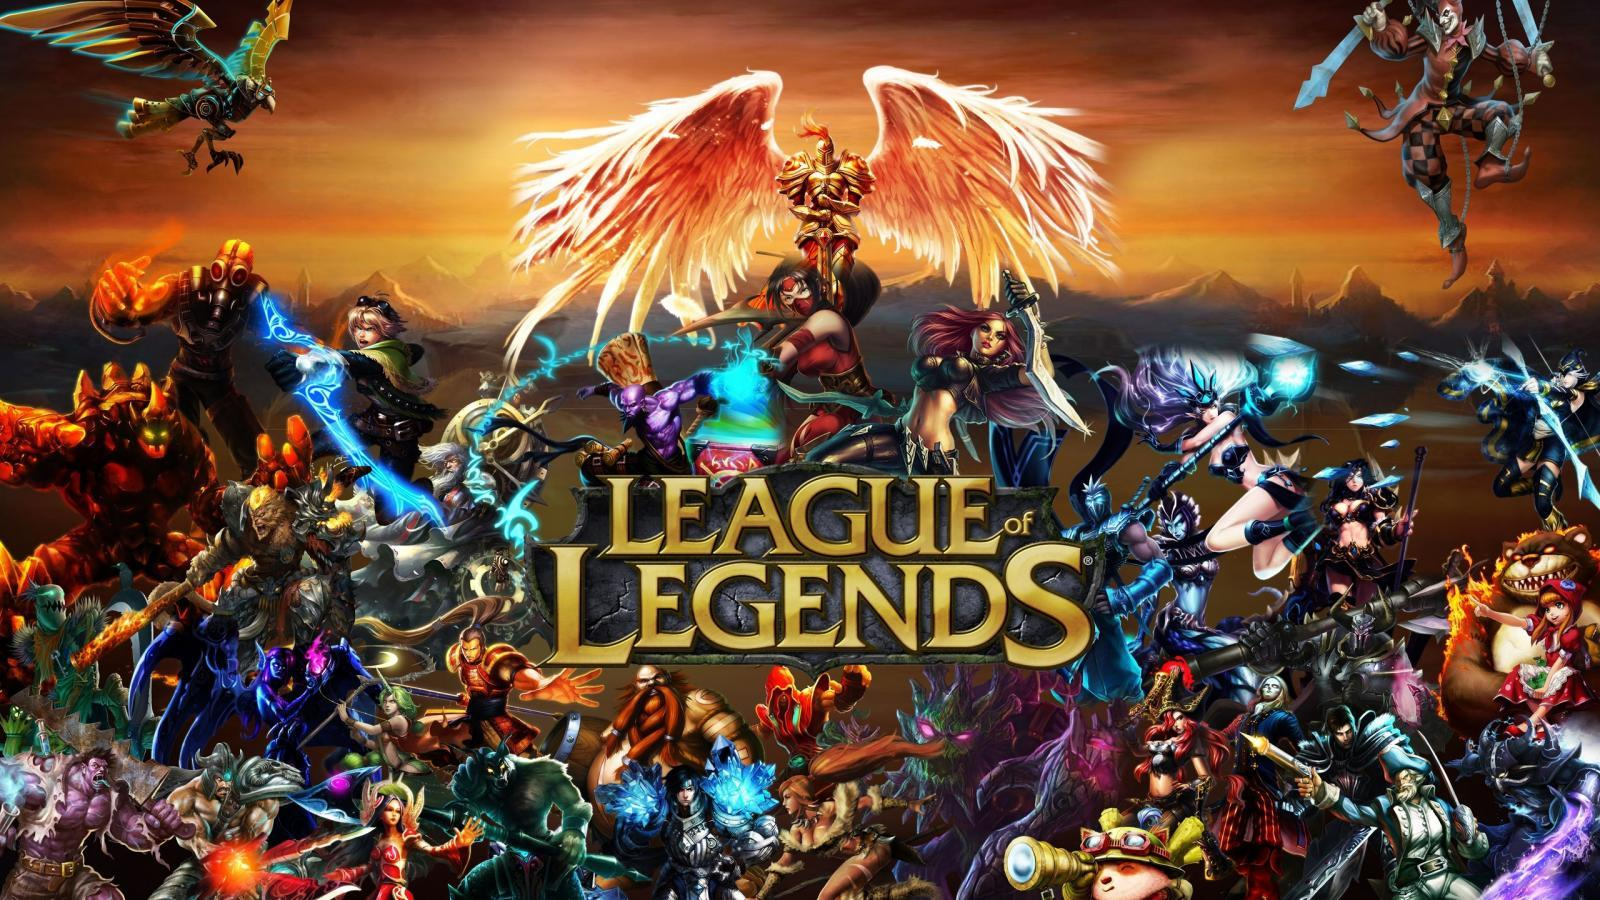 League of Legends toernooi met een twist